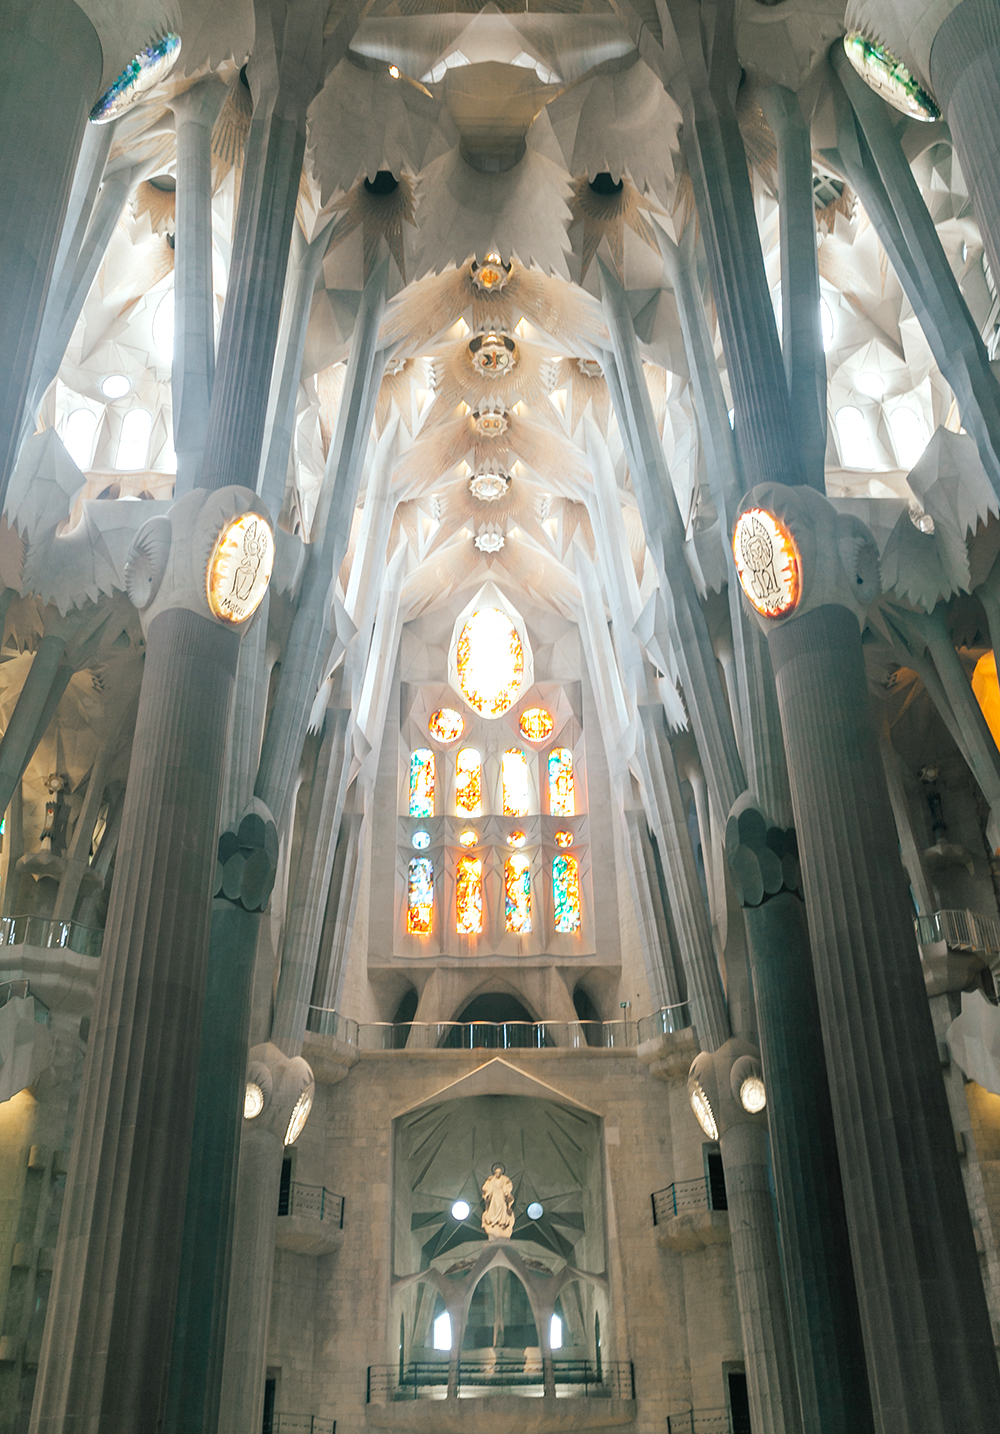 livvyland-blog-olivia-watson-fashion-travel-blogger-barcelona-spain-goudi-cathedral-la-sagrada-familia-inside-1